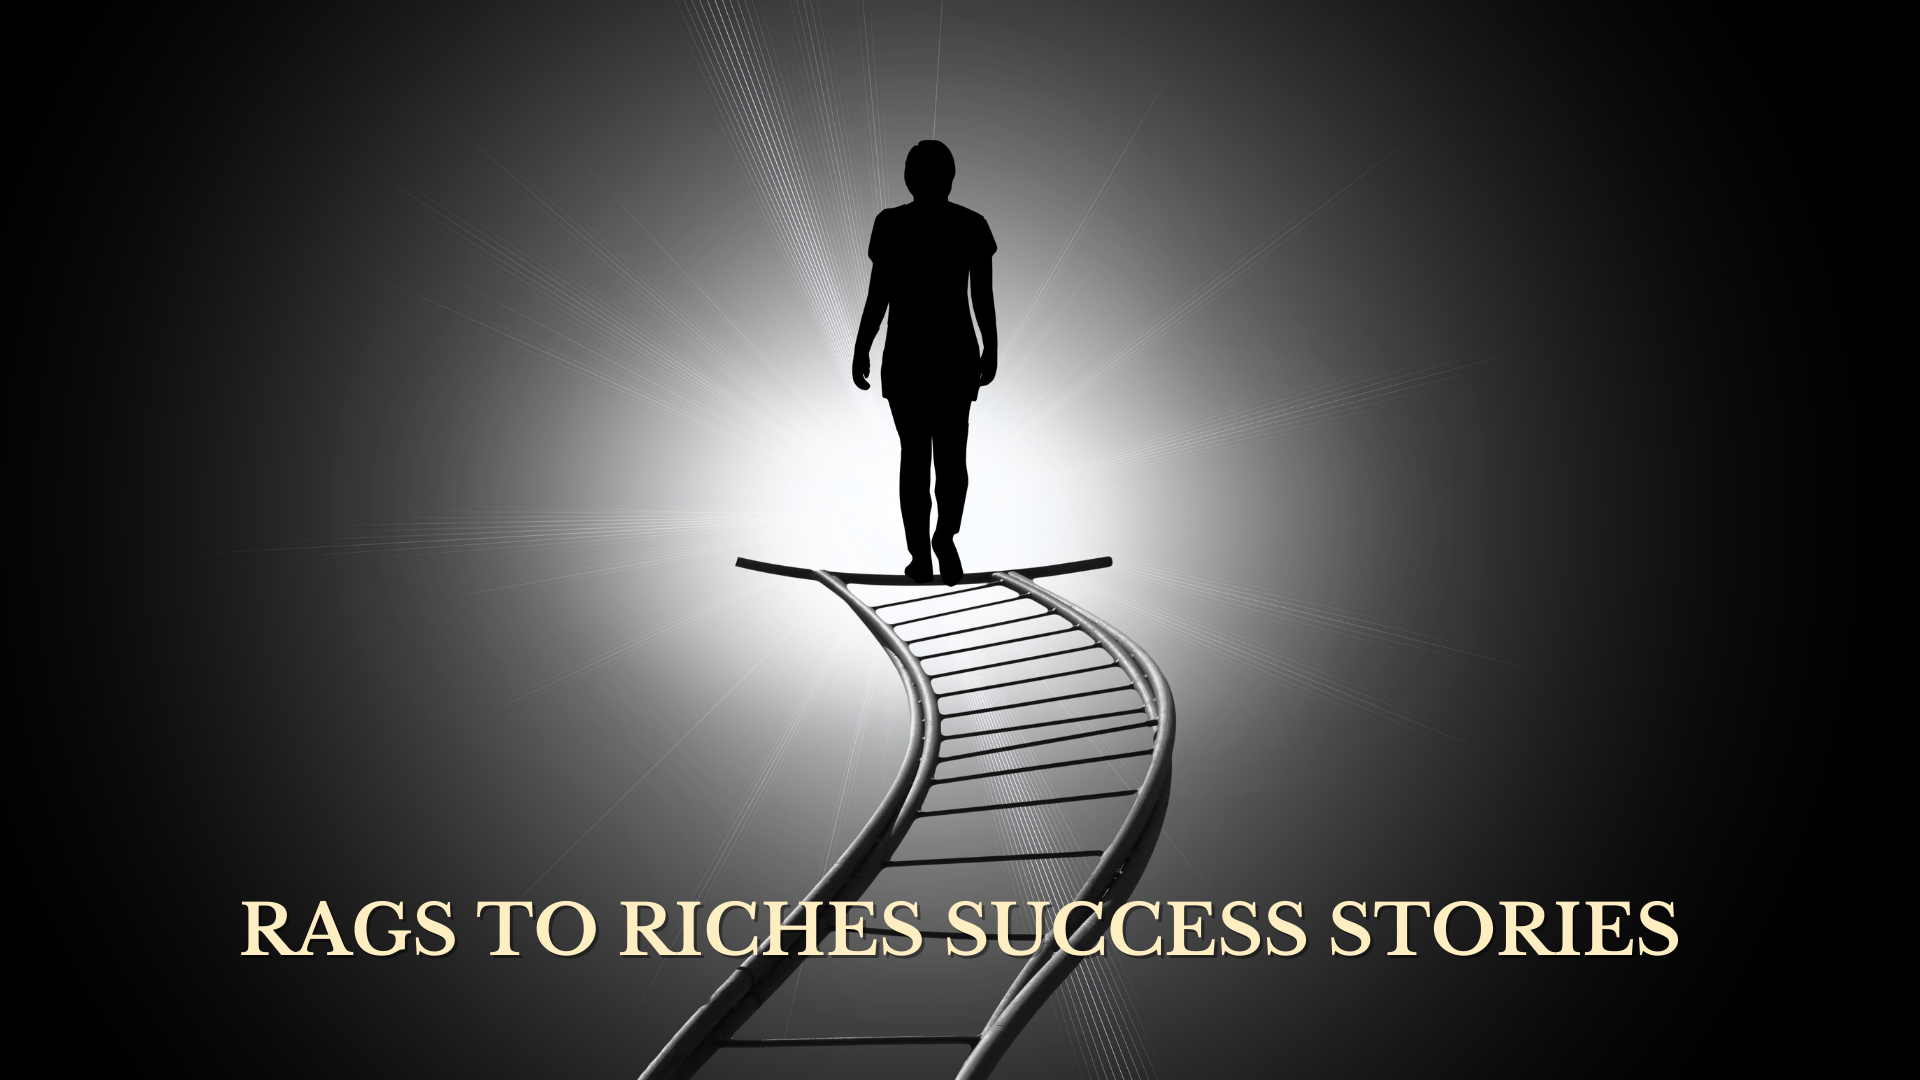 Rags to riches success stories